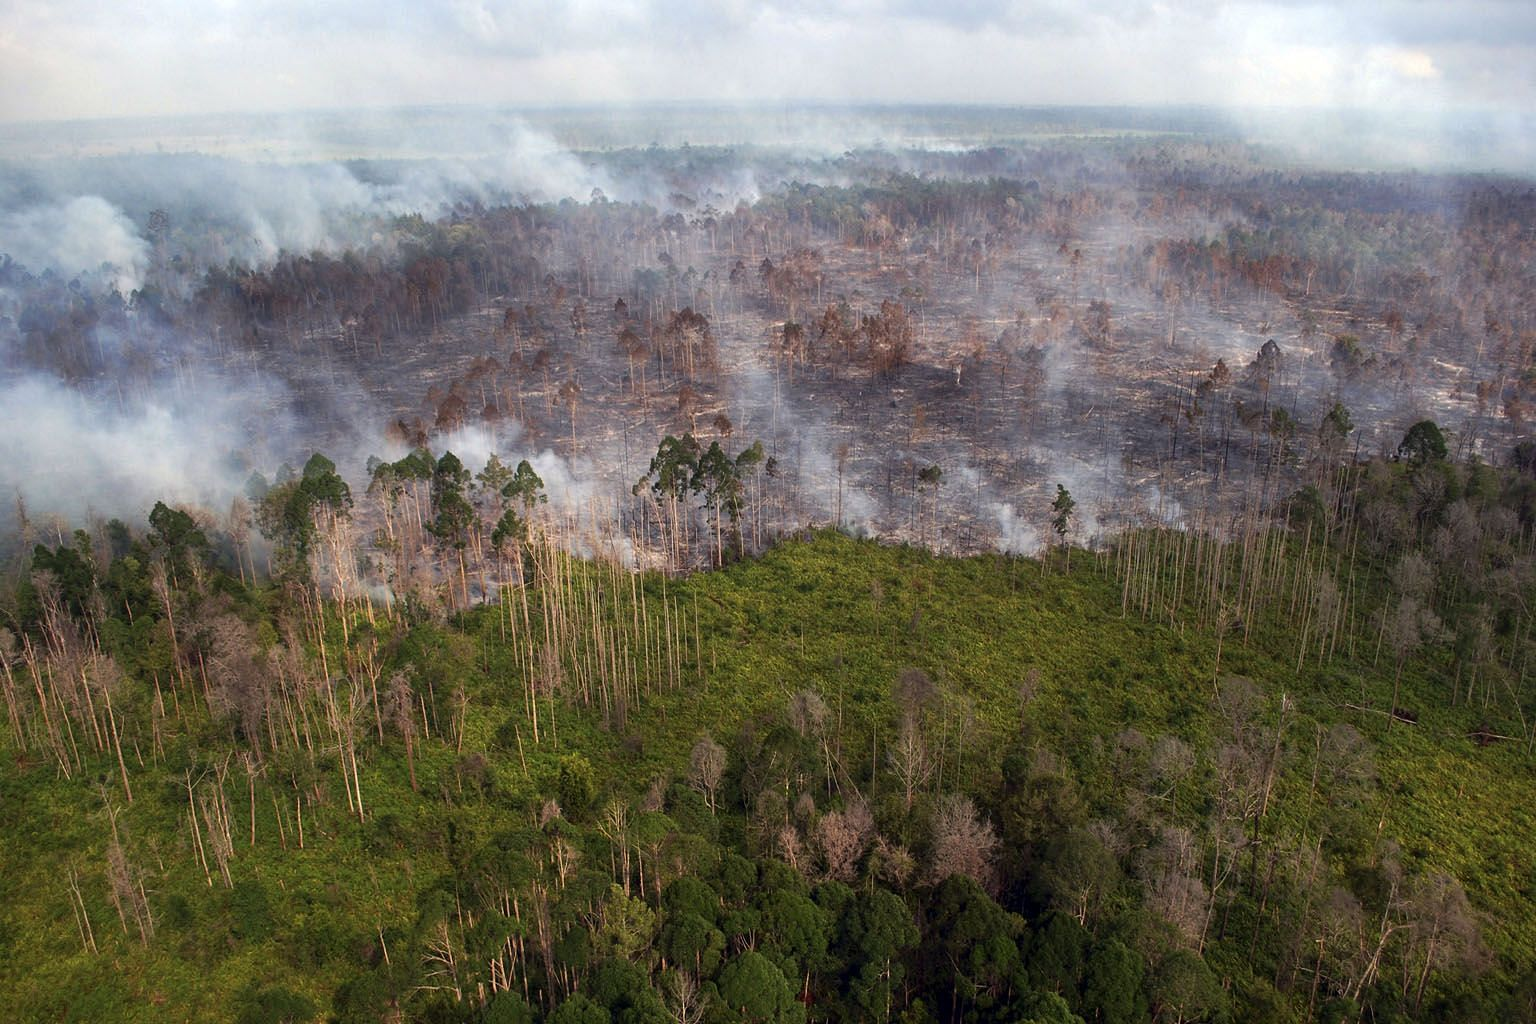 An aerial view of a forest fire near Bokor village in the Indonesian province of Riau last month. Initiatives by Indonesia, Singapore and agro-forestry firms show a growing momentum to tackle the haze issue since last year's crisis, but while buyers publi